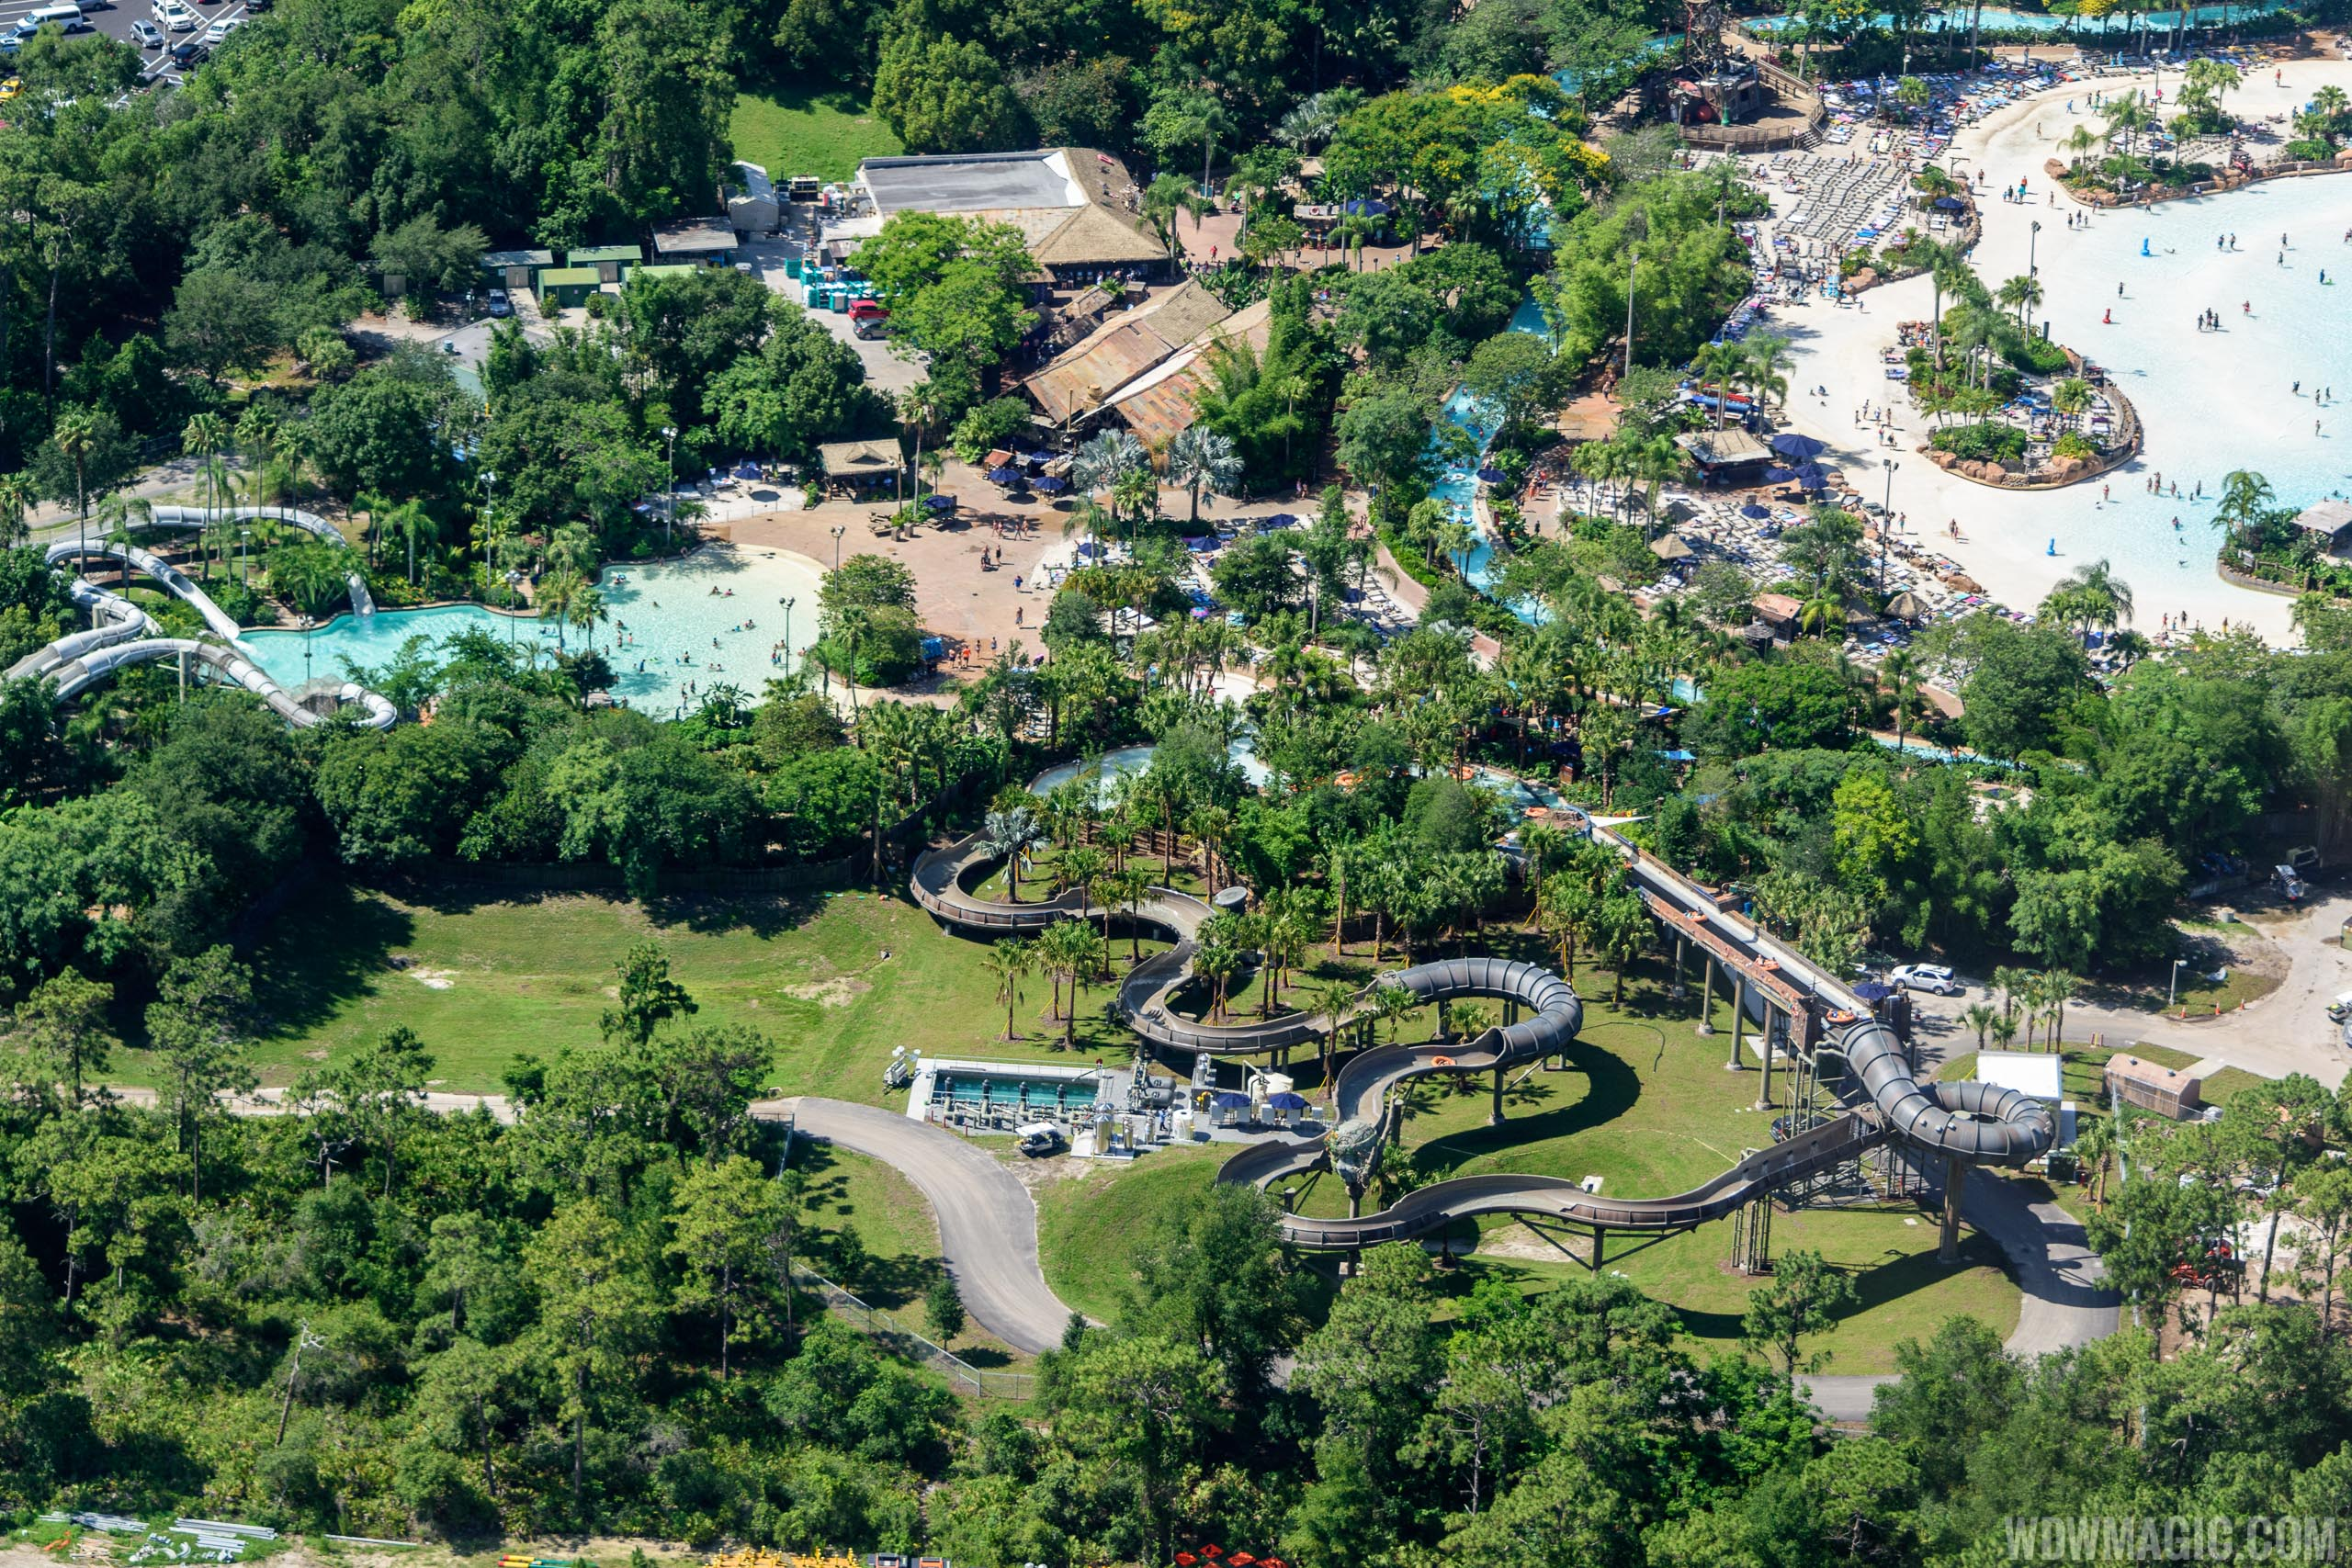 Aerial view of Typhoon Lagoon